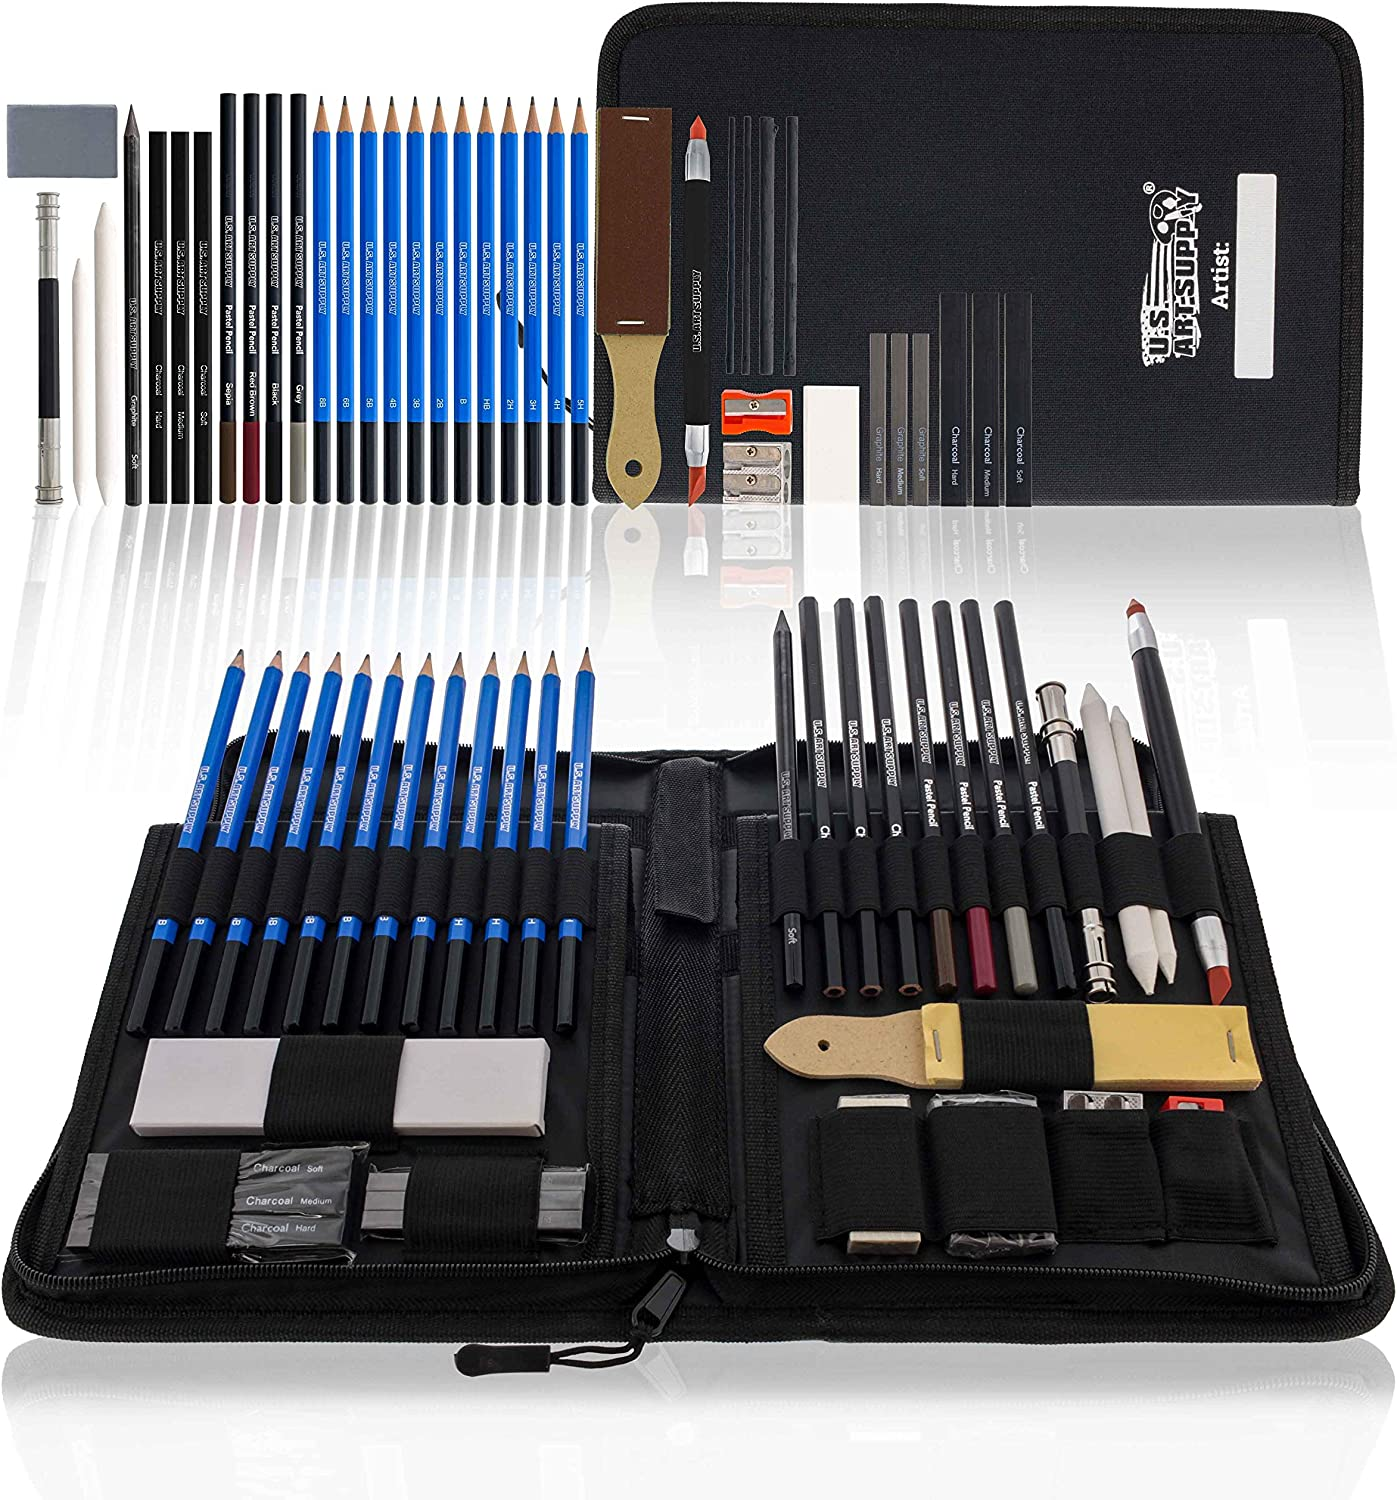 U.S. Art Supply 40-Piece Drawing & Sketching Art Set - Professional Complete Artist Kit, Graphite, Charcoal, Pastel Pencils & Sticks, Blend Stumps, Erasers - Zippered Pop-Up Carry Case, Kids, Students